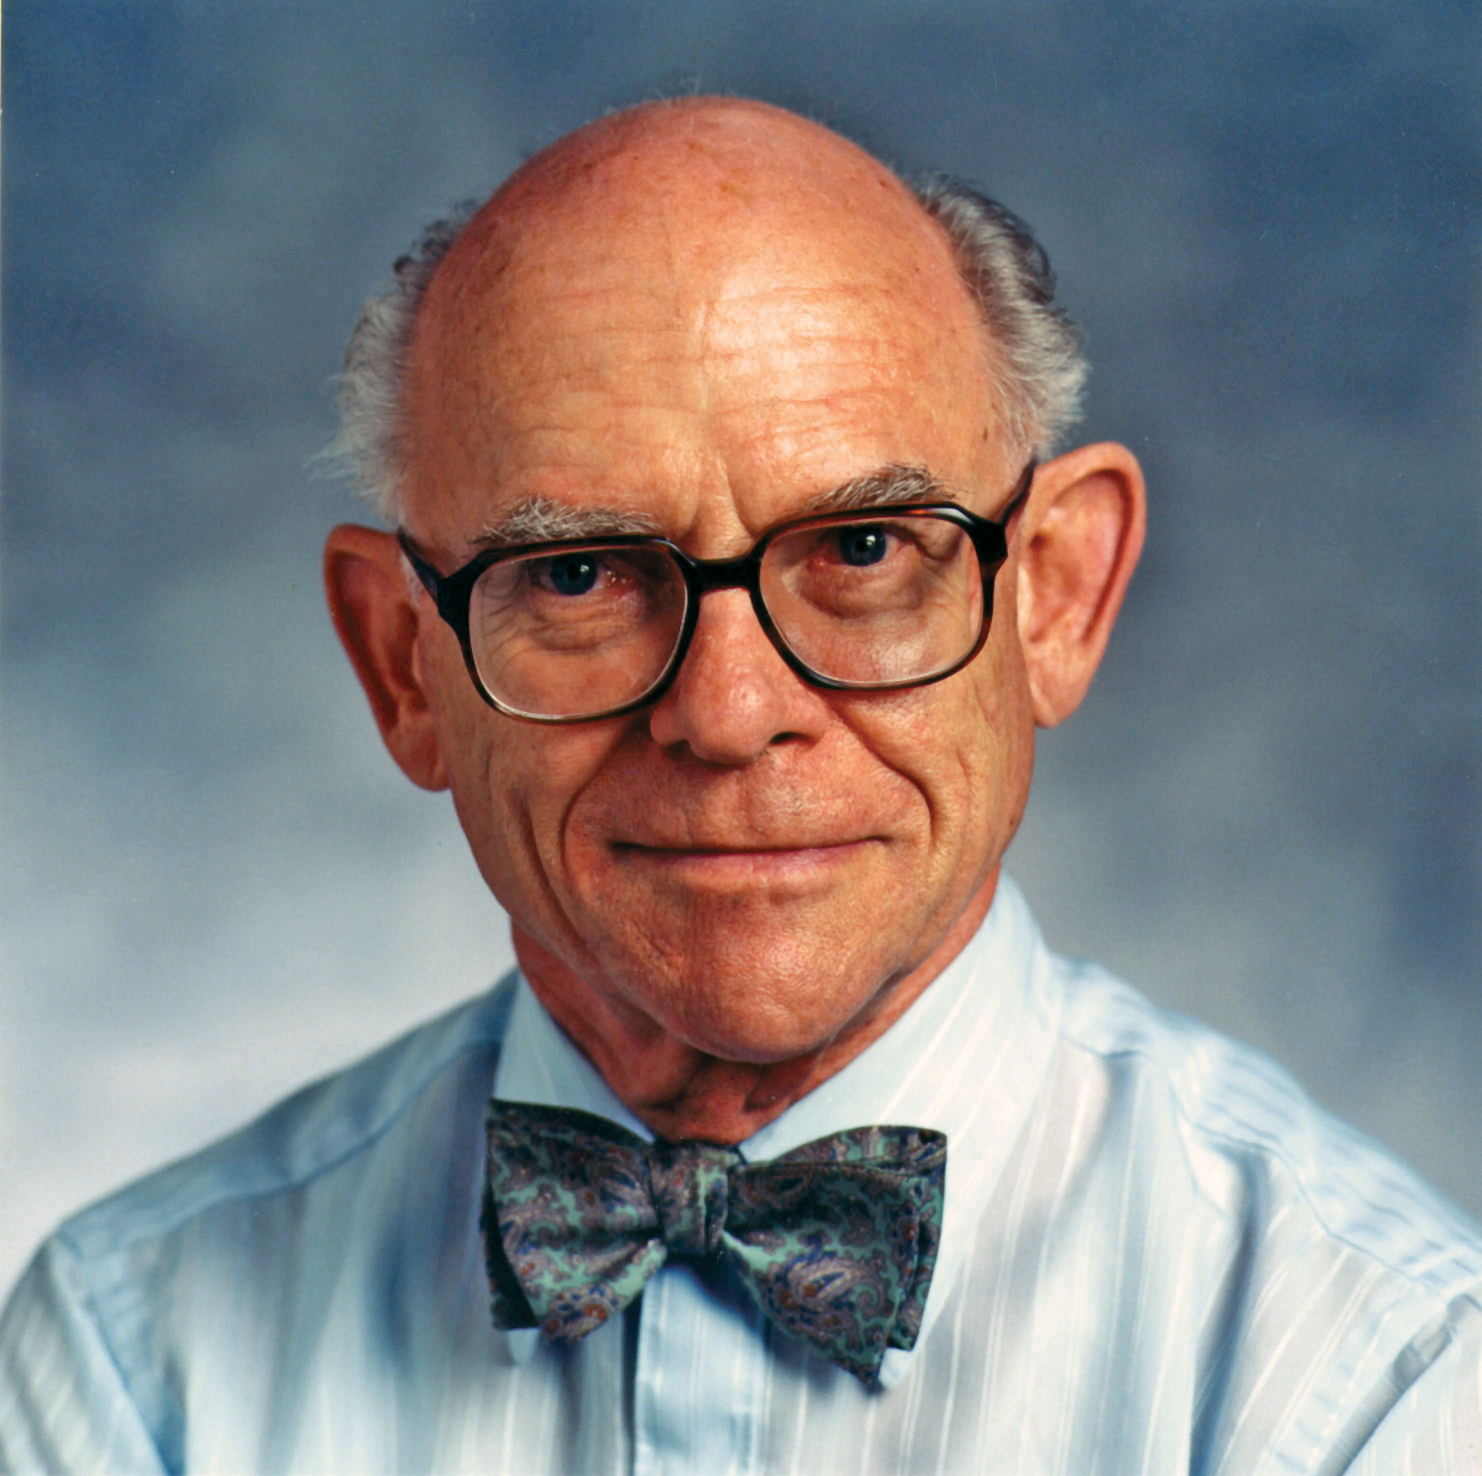 Texas A&M chemist F.A. Cotton smiles at the camera